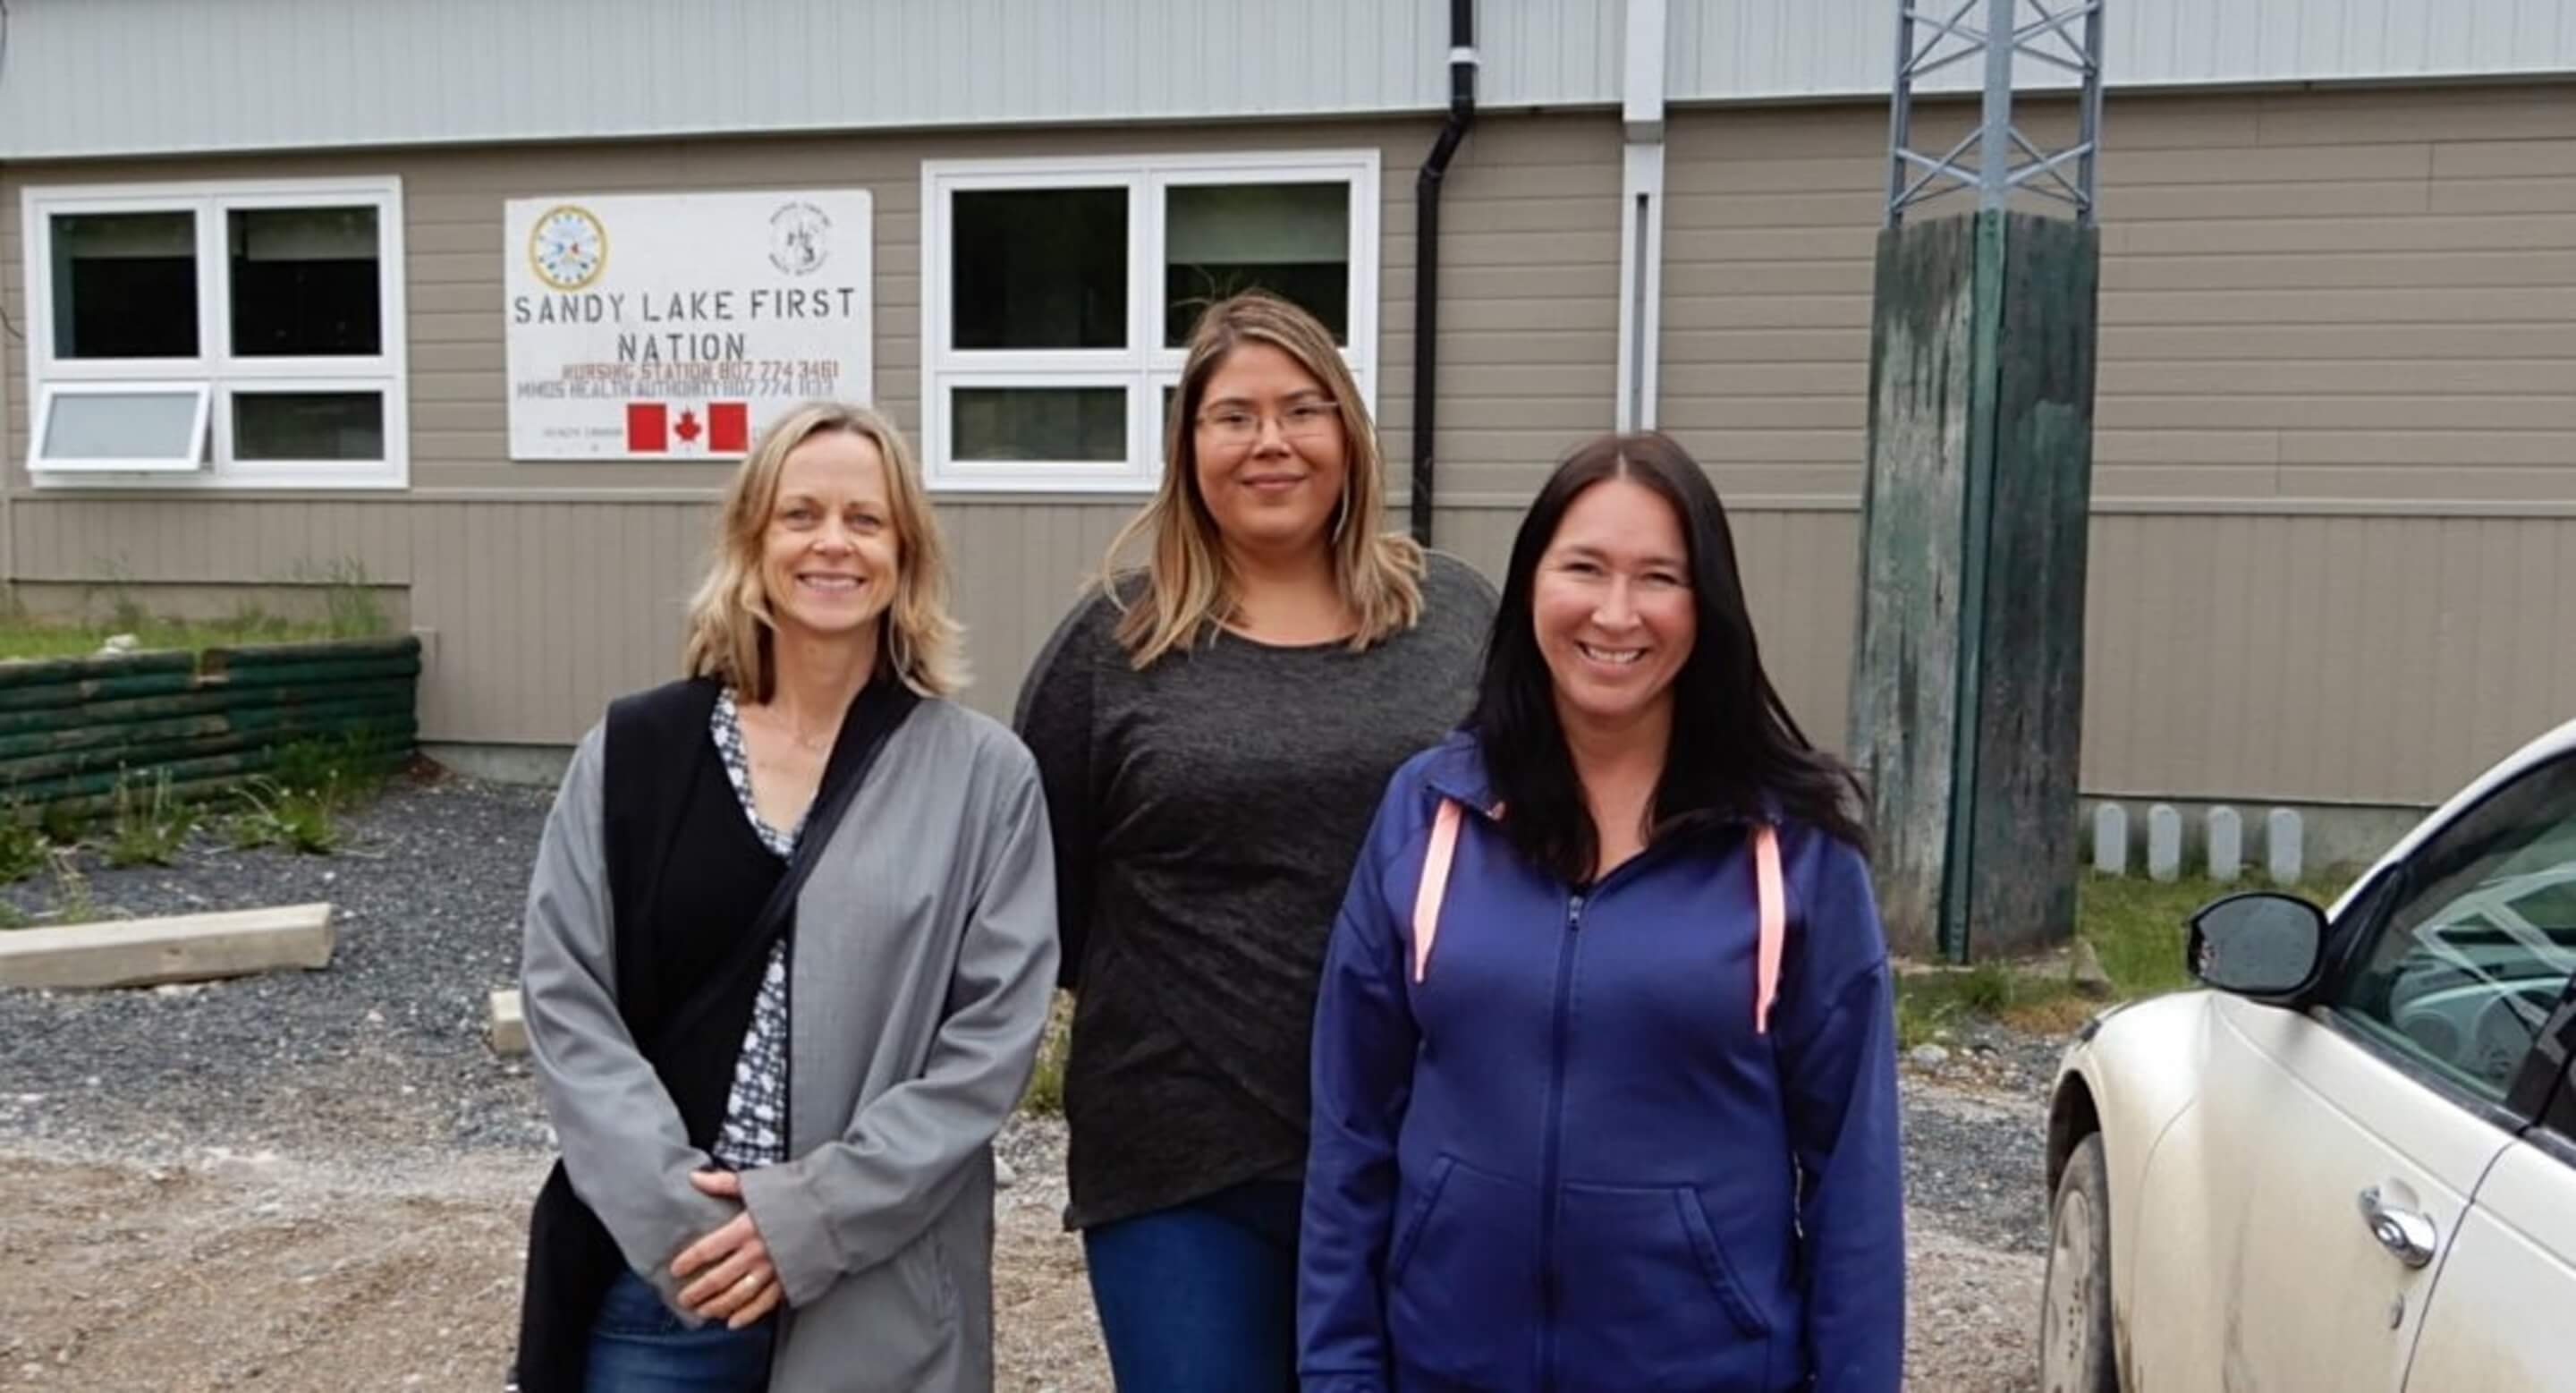 Dr. Samantha Wells, Krystine Abel and Dr. Renee Linklater outside the nursing station in Sandy Lake First Nation